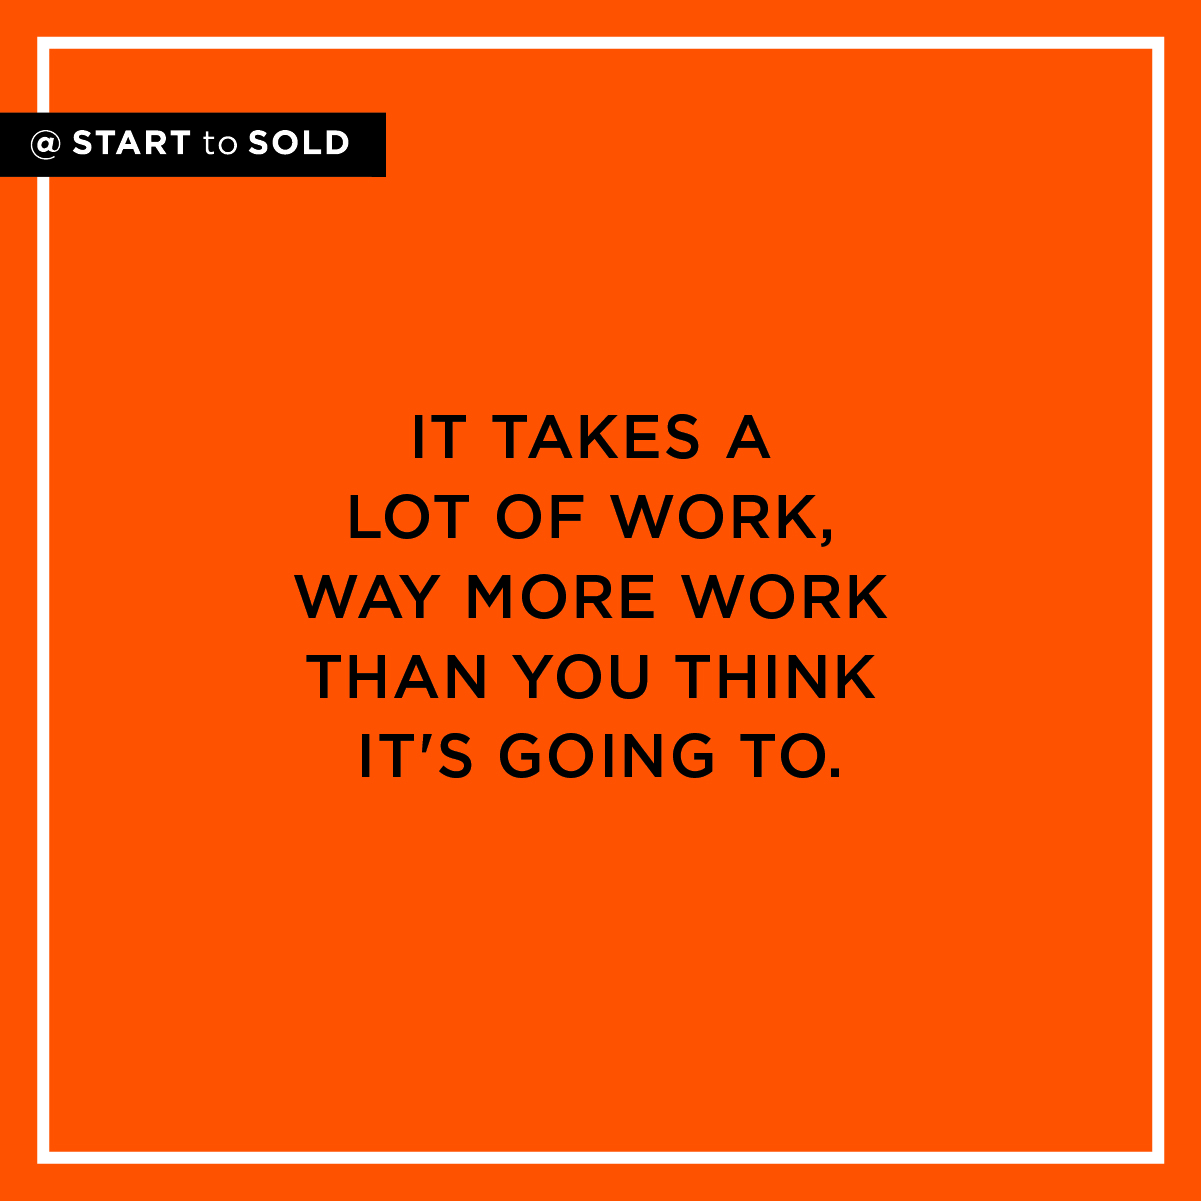 It takes a lot of work, way more work than you think it's going to to get your business & life going